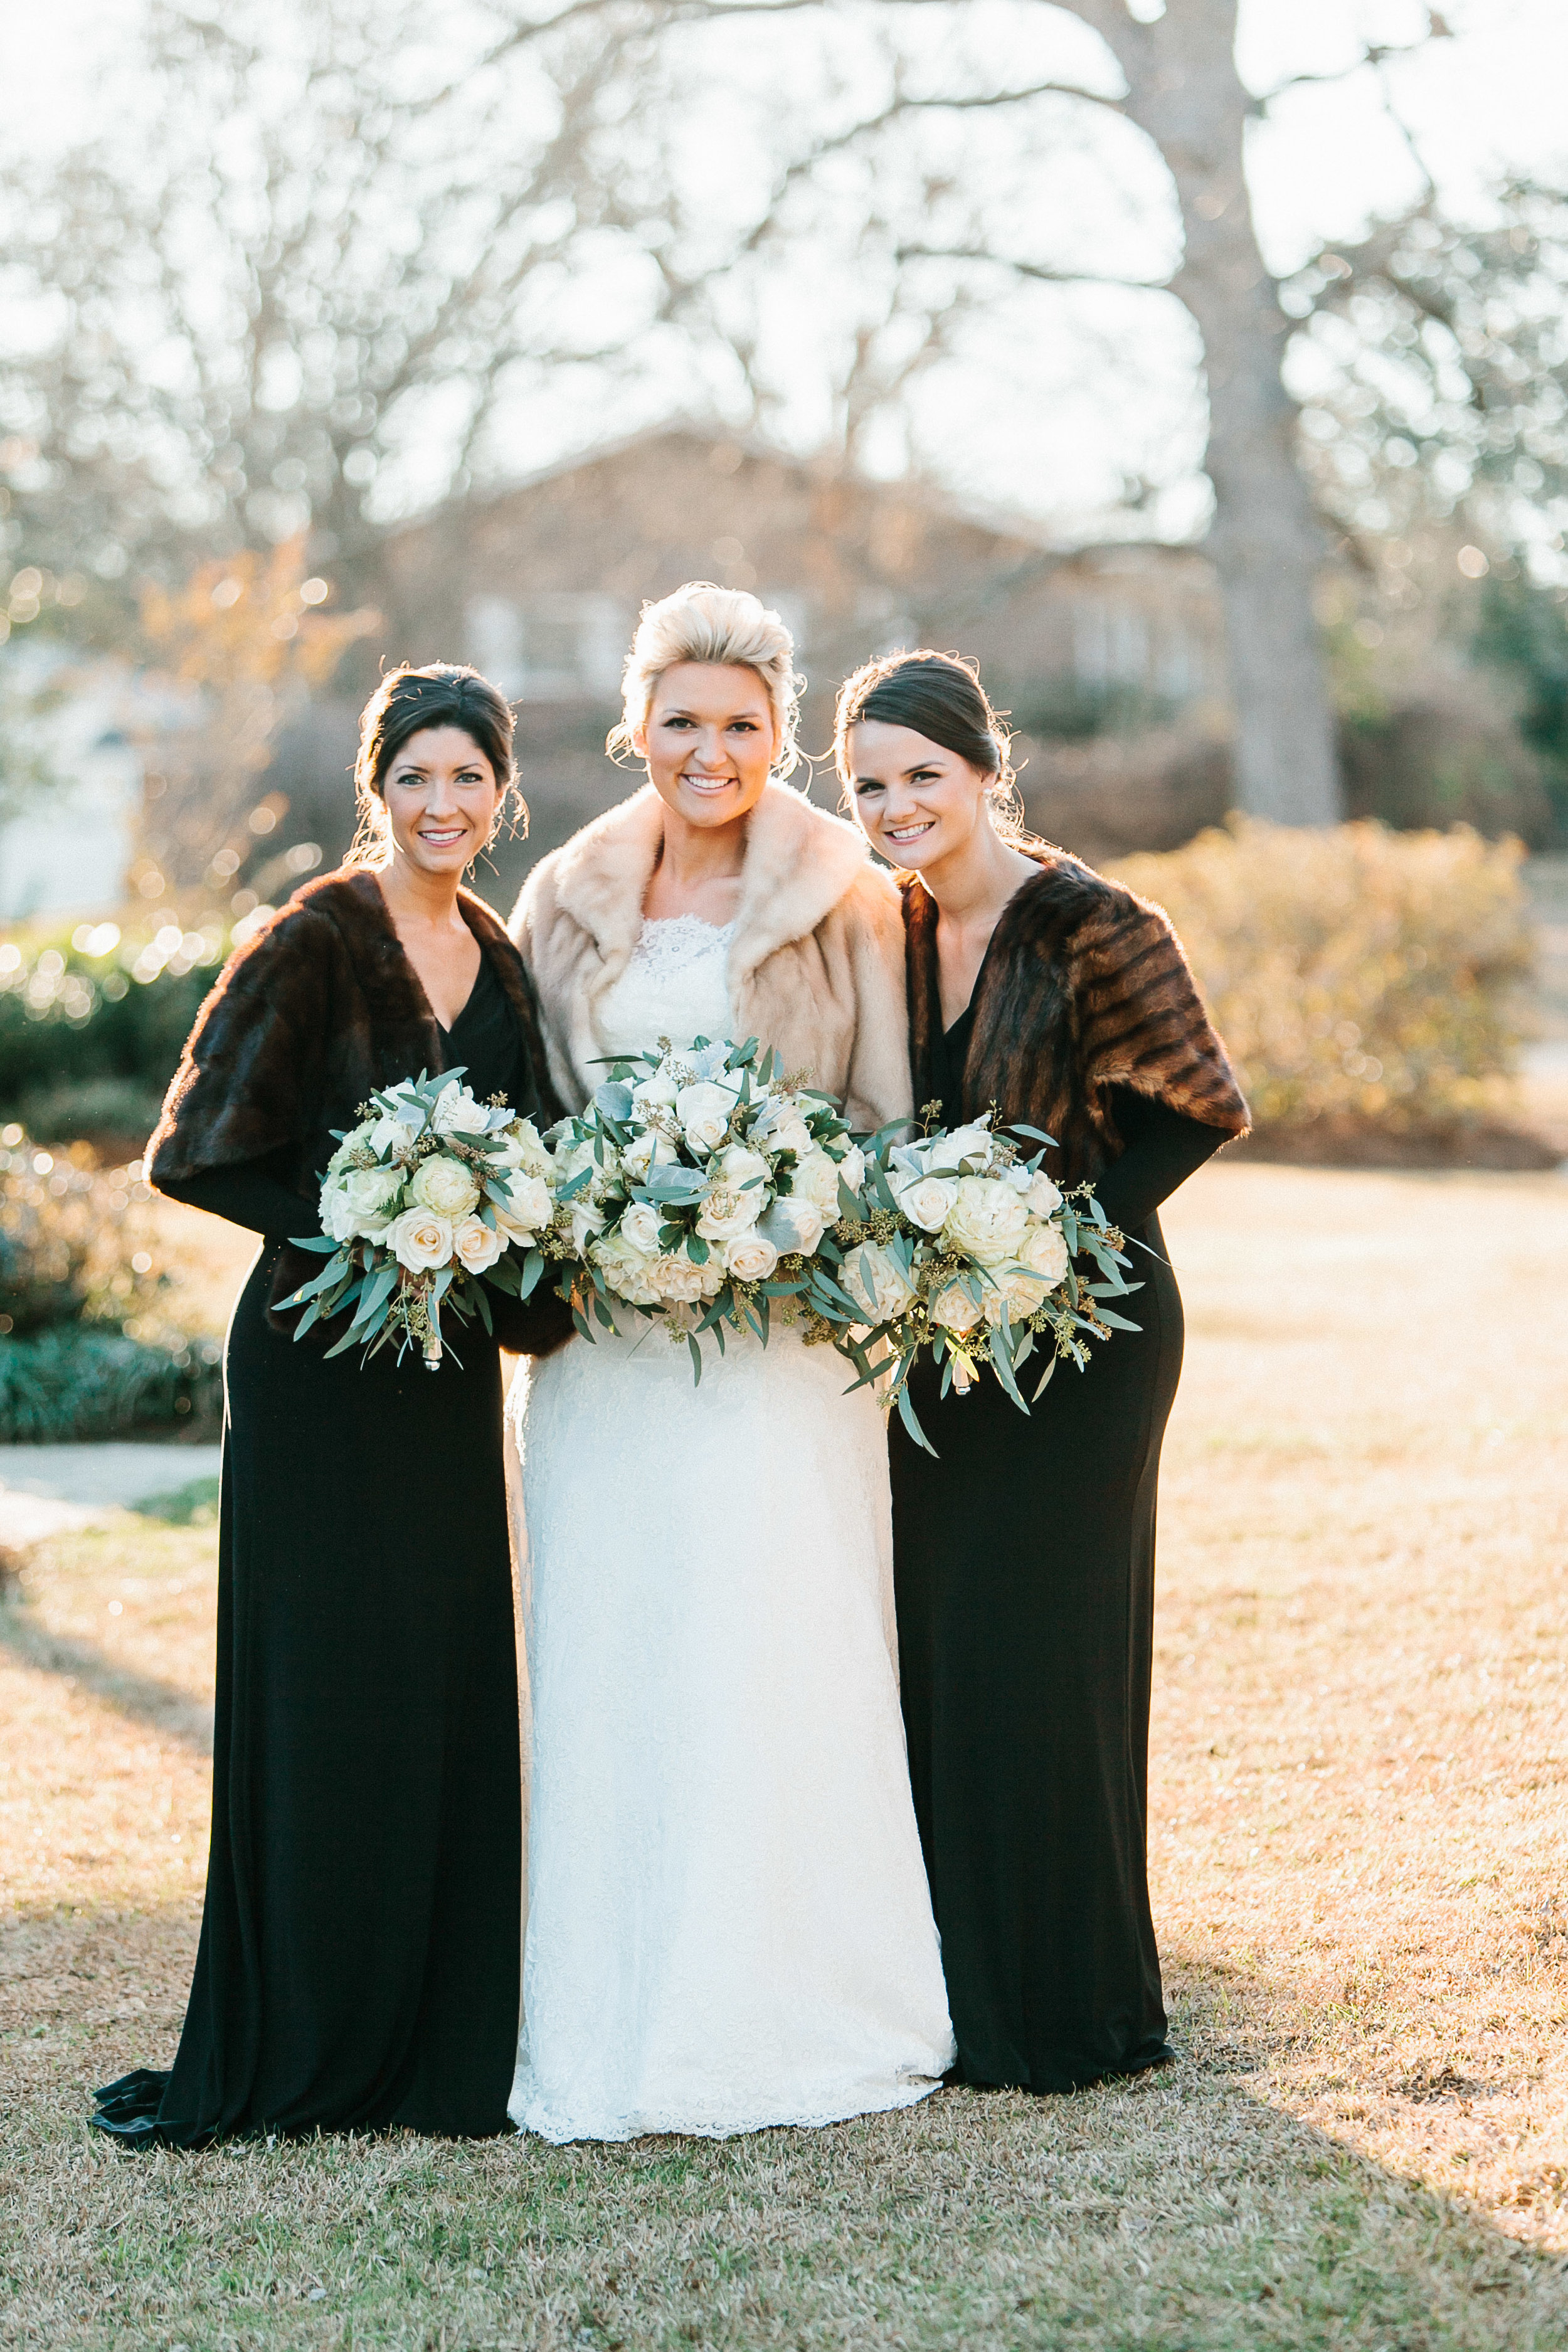 Long-sleeved black bridesmaids dresses with fur stoles for Rustic Winter Woodland wedding by Mark Williams Studio.